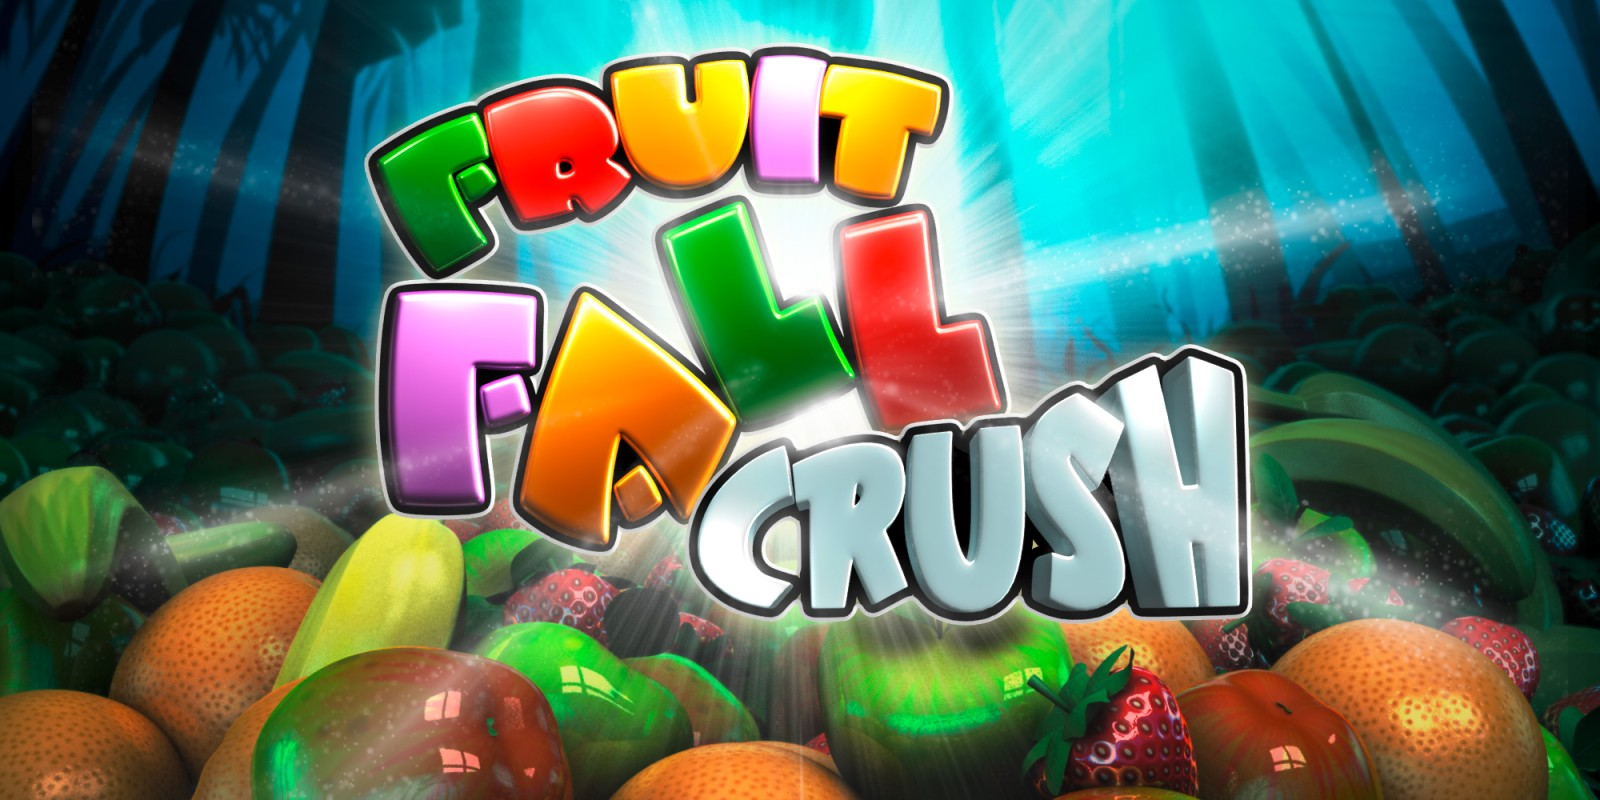 FruitfFall Crush